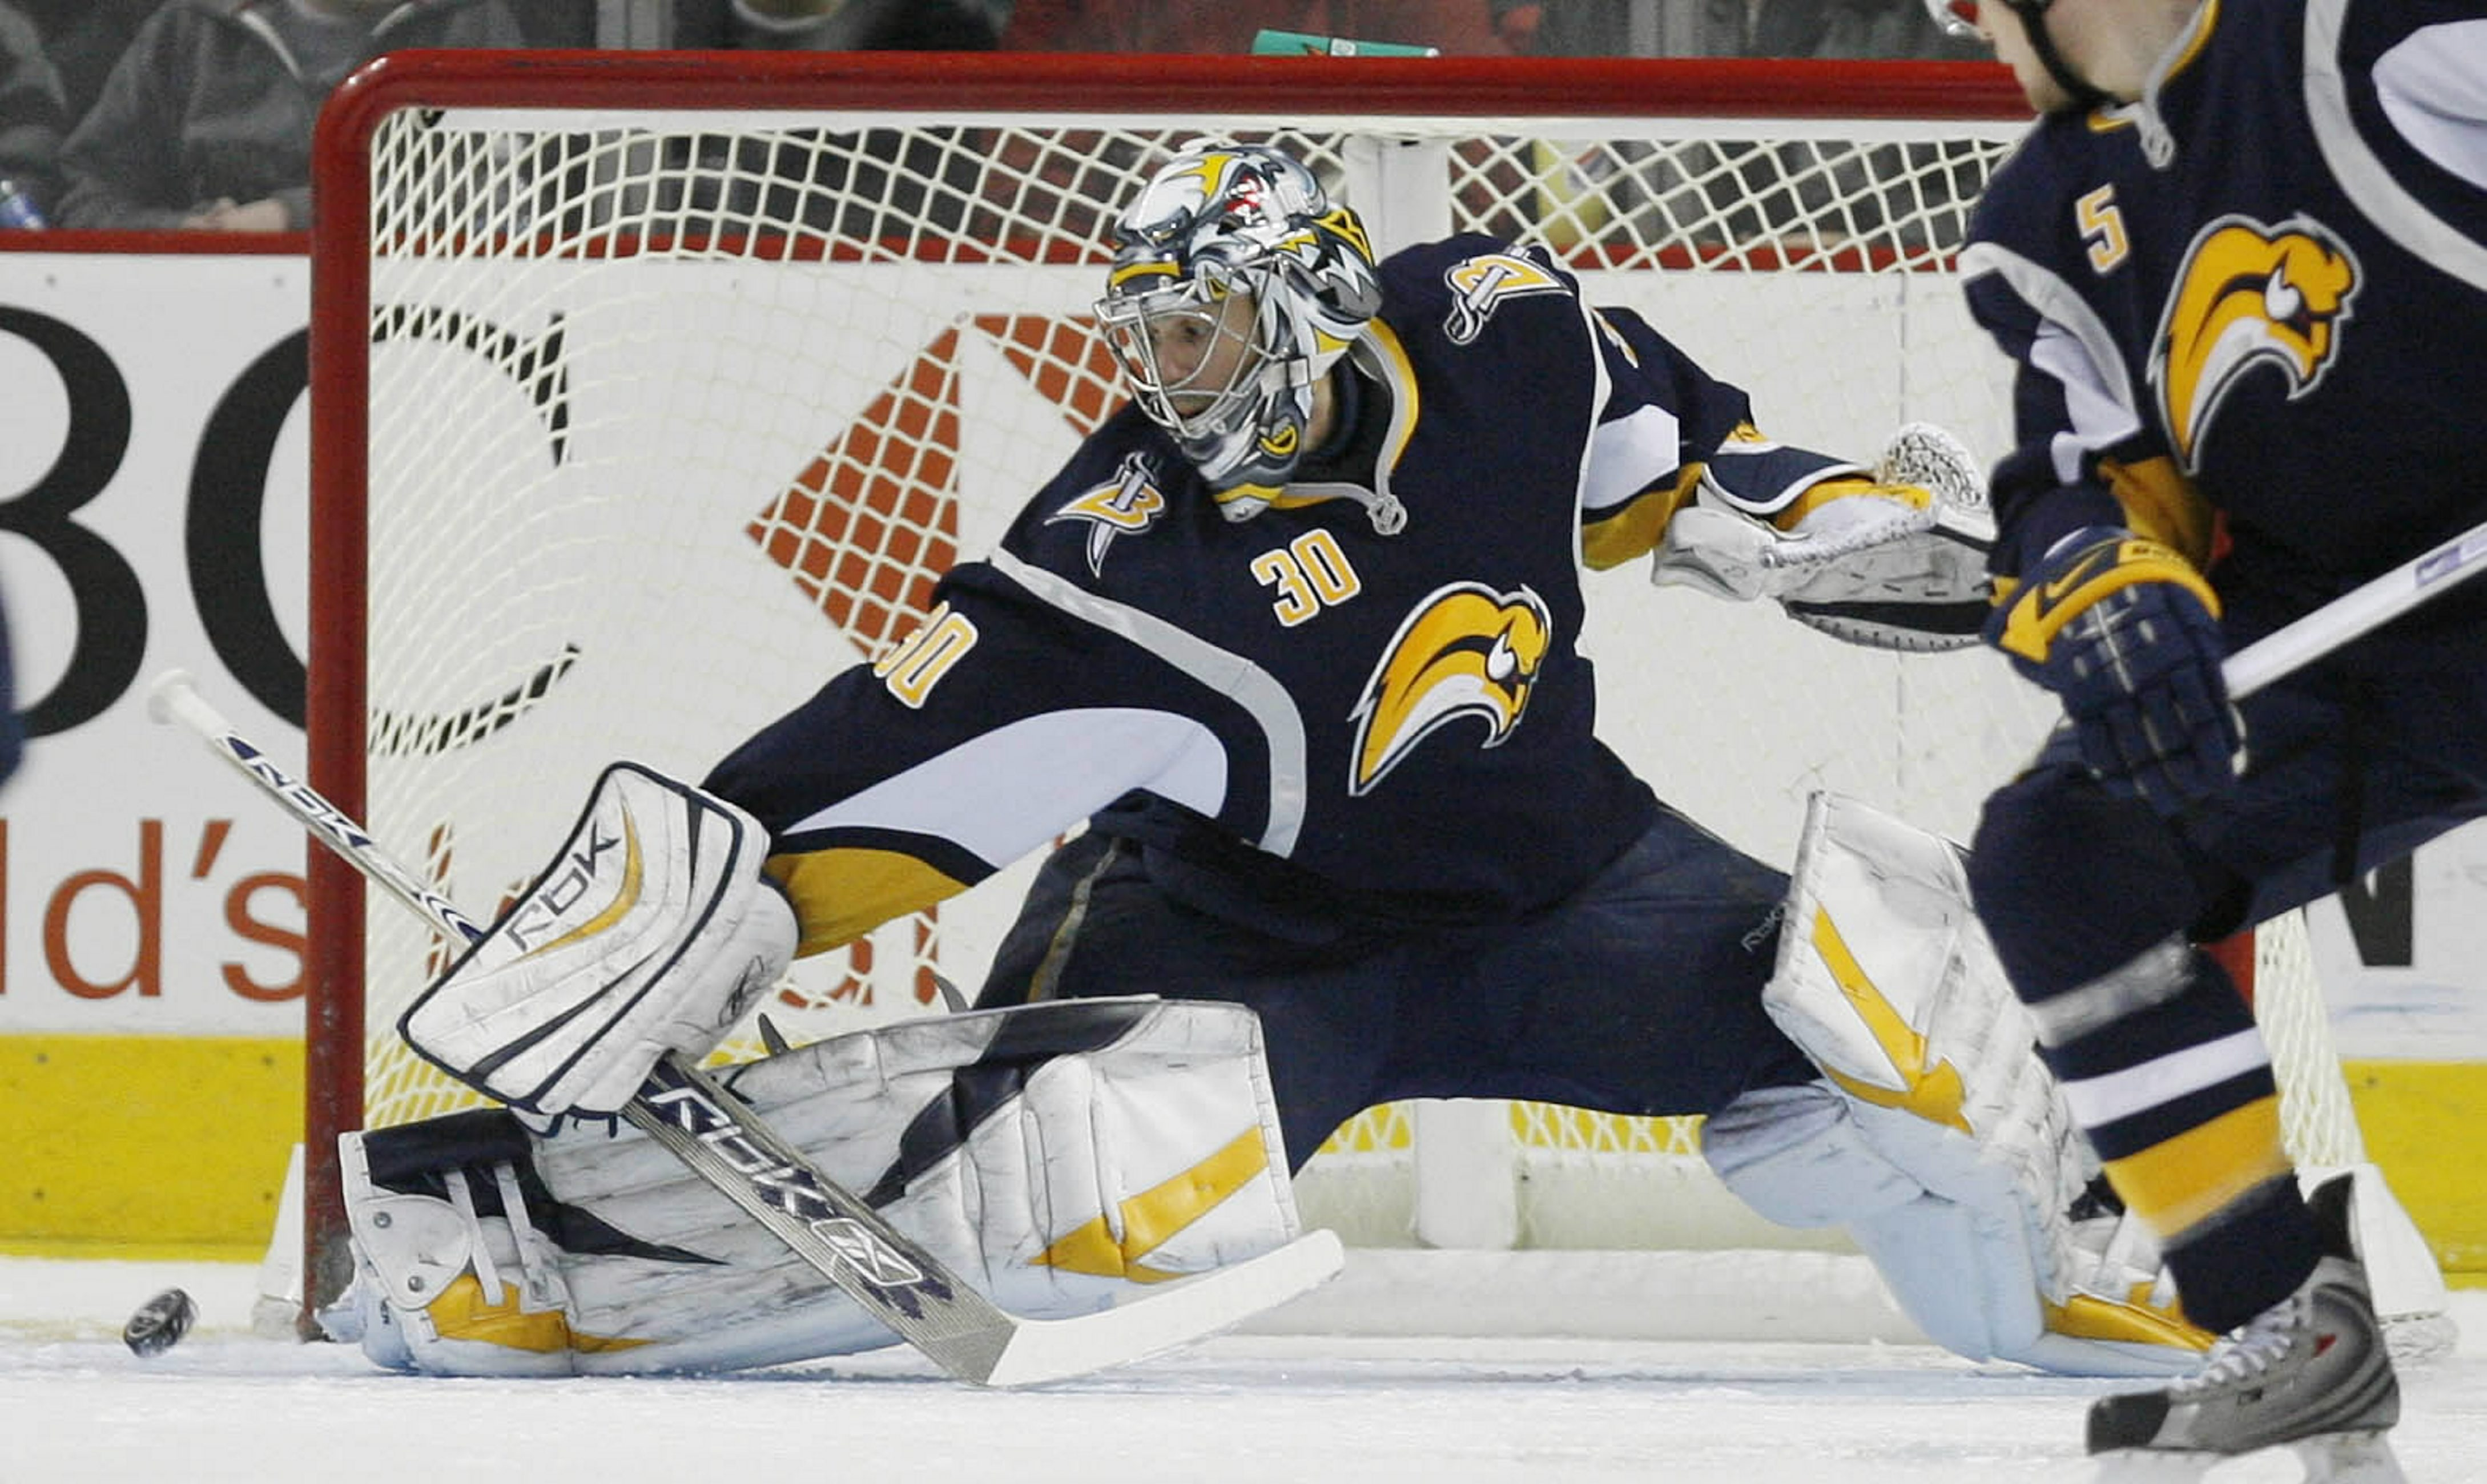 Ryan Miller helped the Sabres reach back-to-back Eastern Conference finals in 2006 and 2007.  (Mark Mulville / Buffalo News file photo)